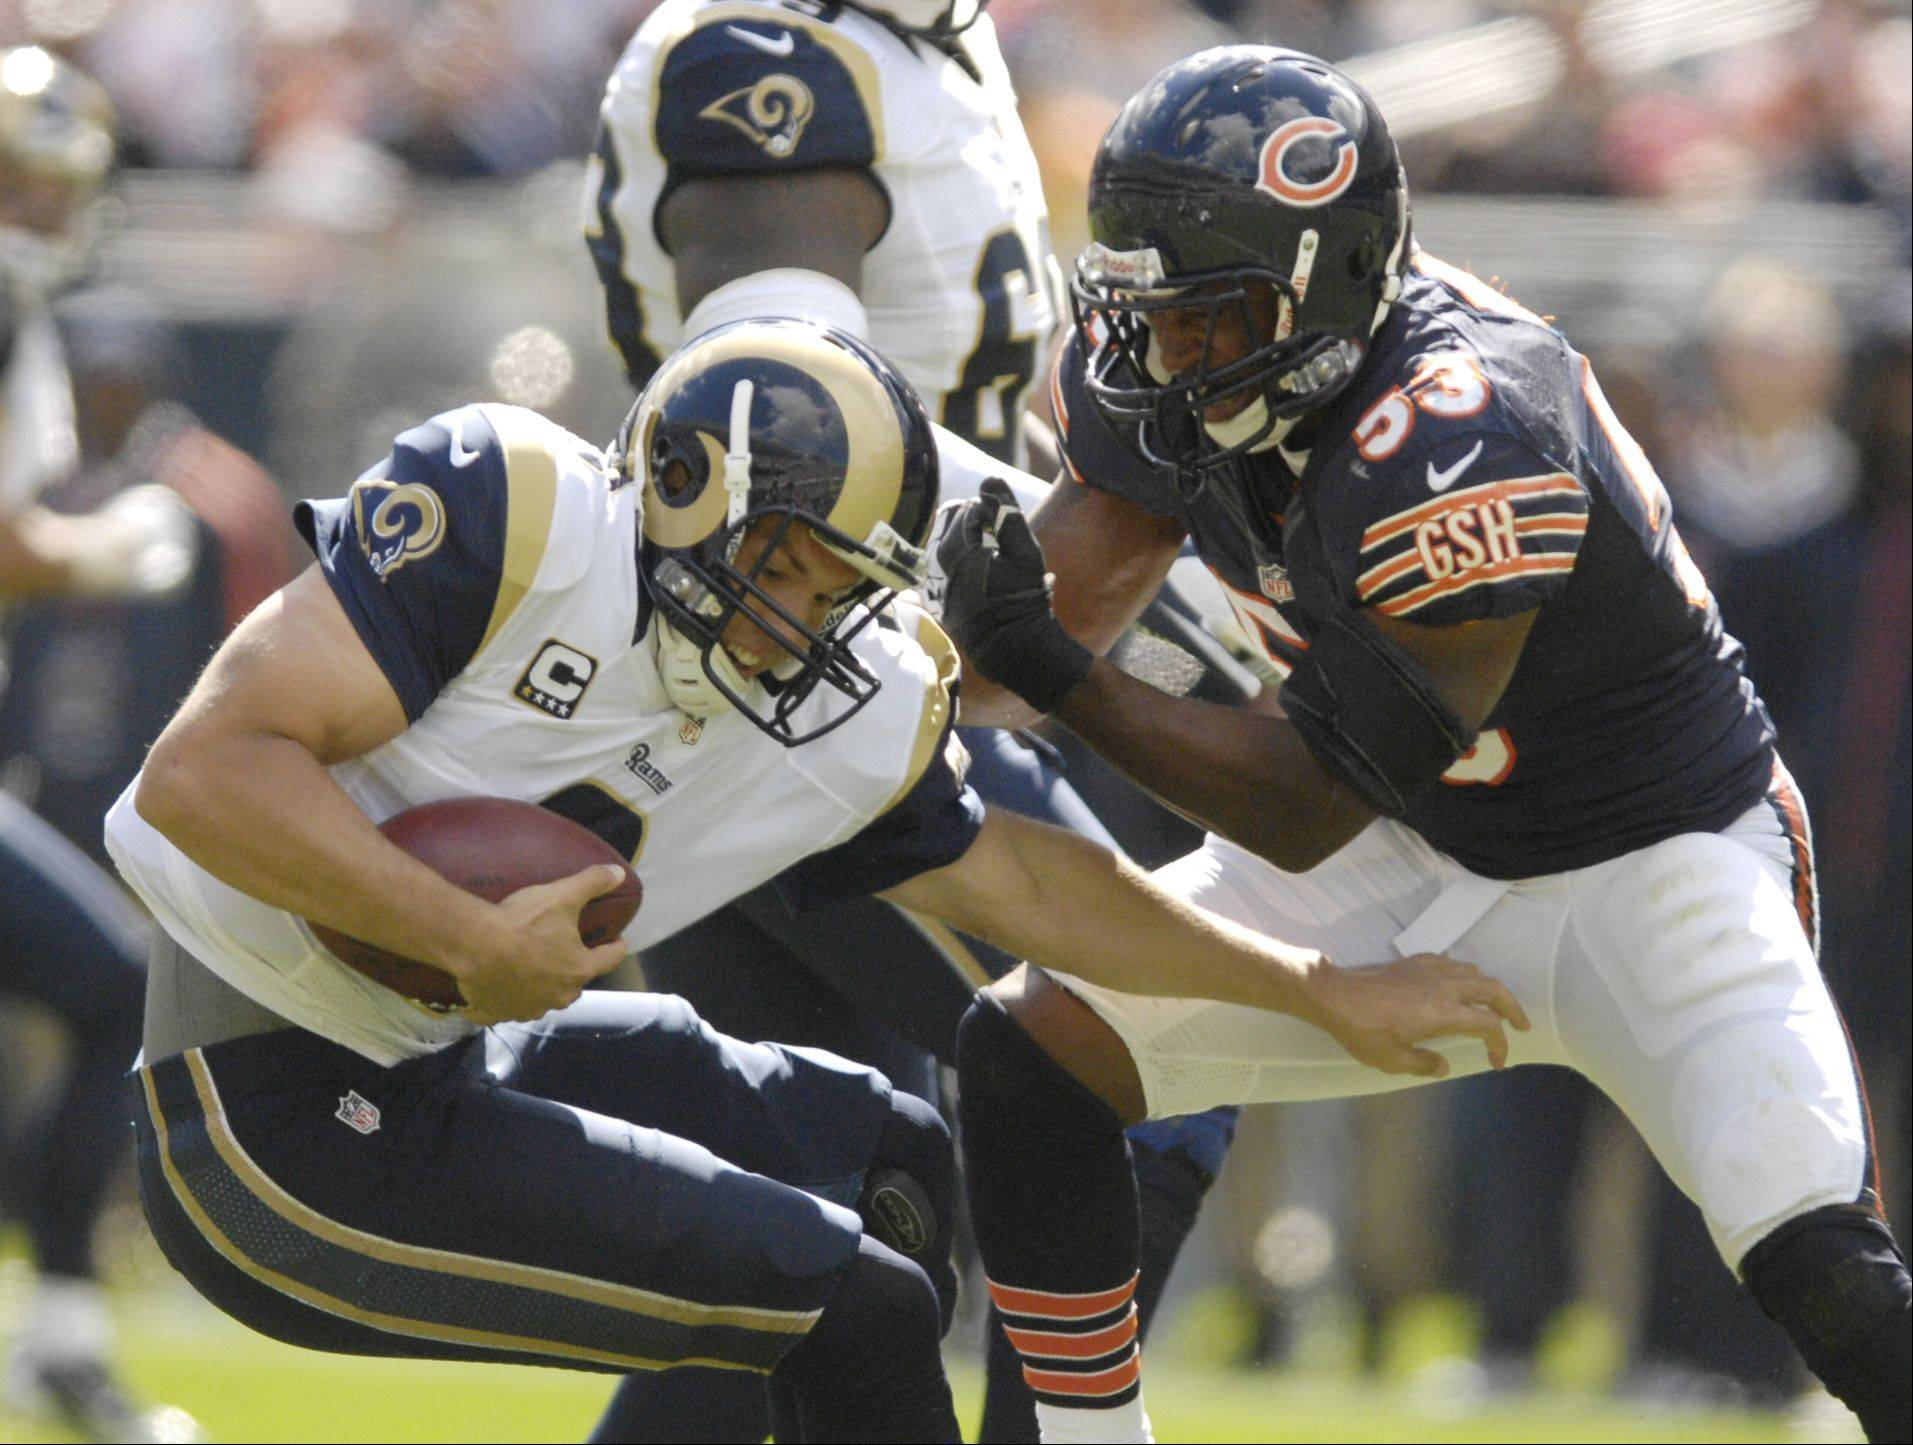 St. Louis Rams quarterback Sam Bradford is sacked by Chicago Bears outside linebacker Nick Roach at Soldier Field in Chicago.